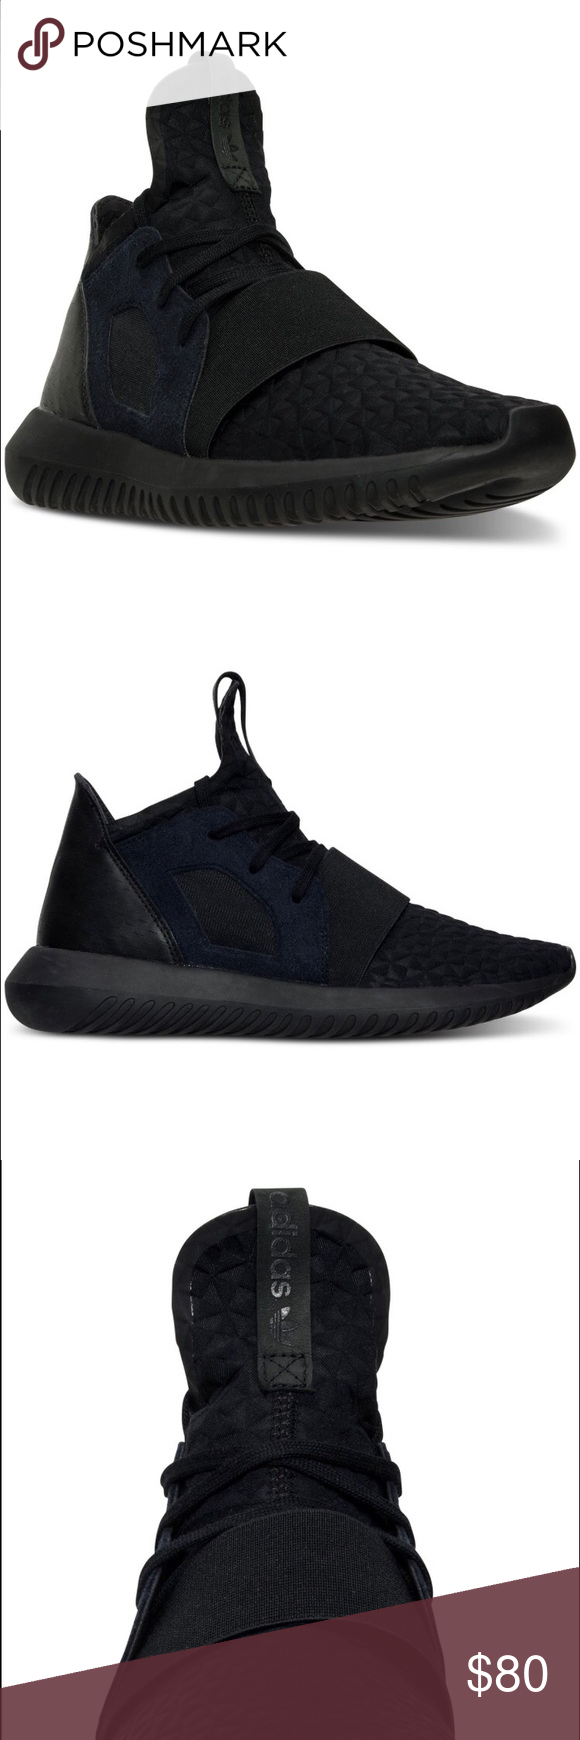 Adidas Originals Womens Tubular Defiant Selling Adidas Tubular Defiant shoes in black! These are super cute and flattering. I wore them once for like 3 hours so condition is like new. Size 7 and true to size. Adidas Shoes Athletic Shoes Adidas women shoes - http://amzn.to/2jB6Udm